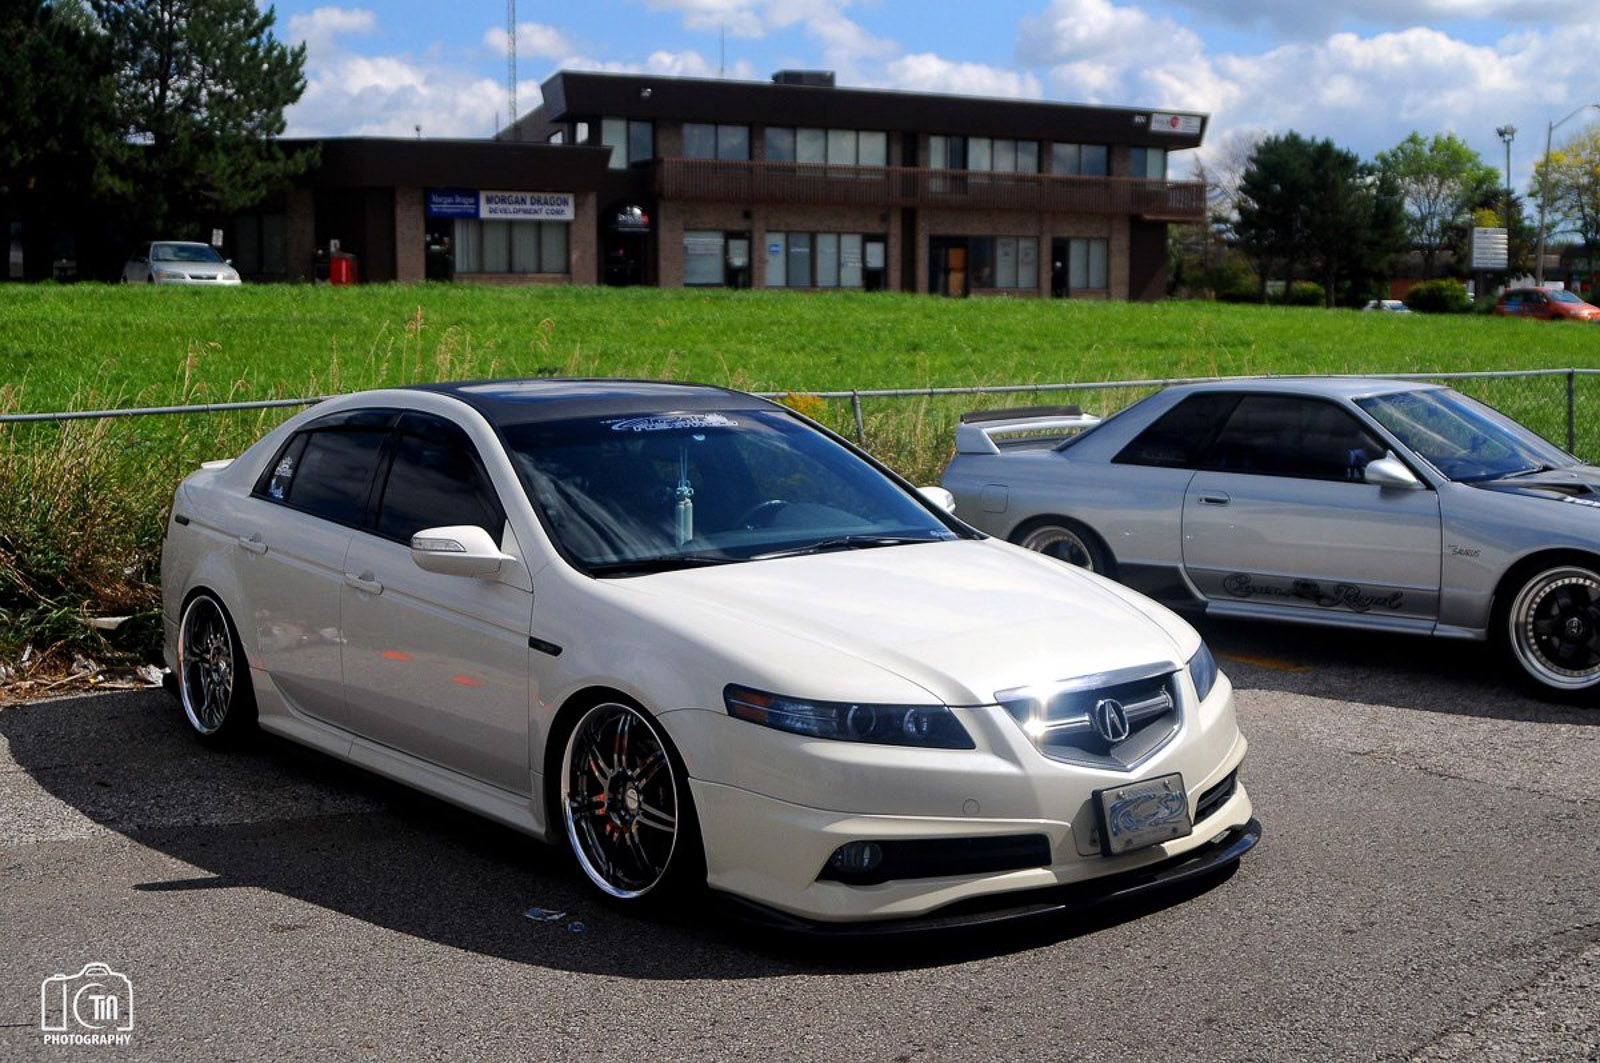 hight resolution of 2003 acura tl type s jdm image 67